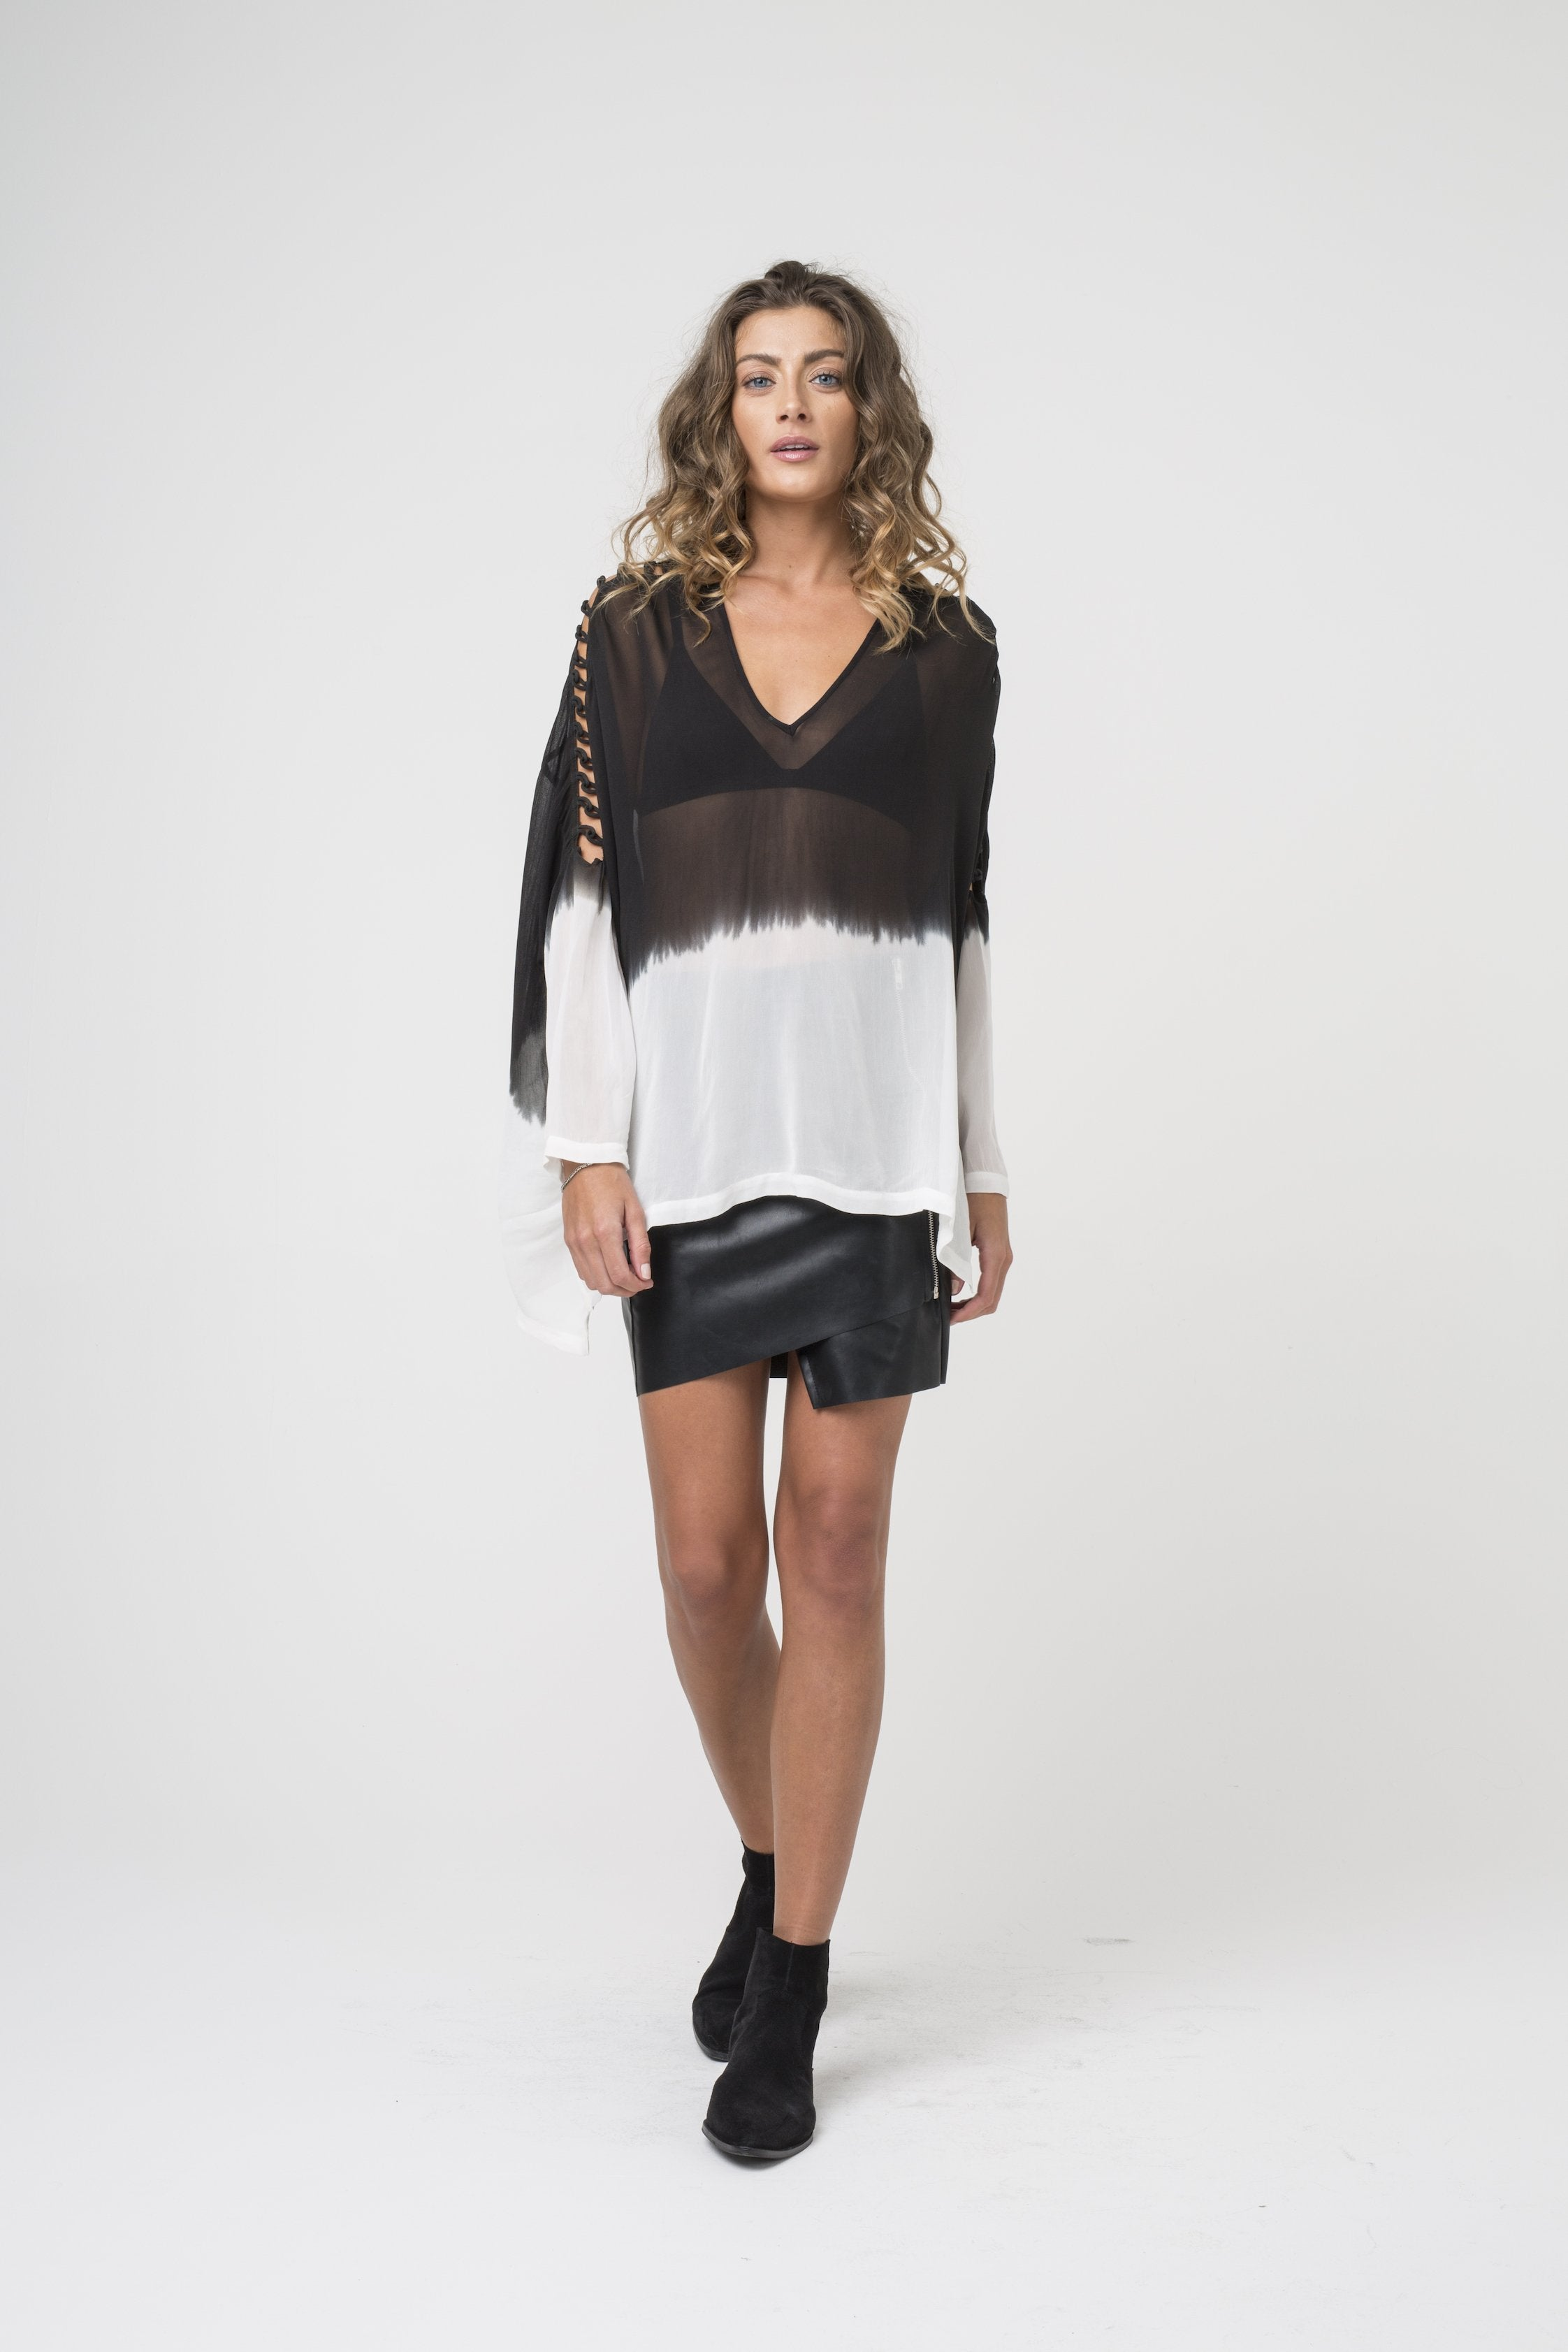 Long Sleeve Top deep v-neckline black and white